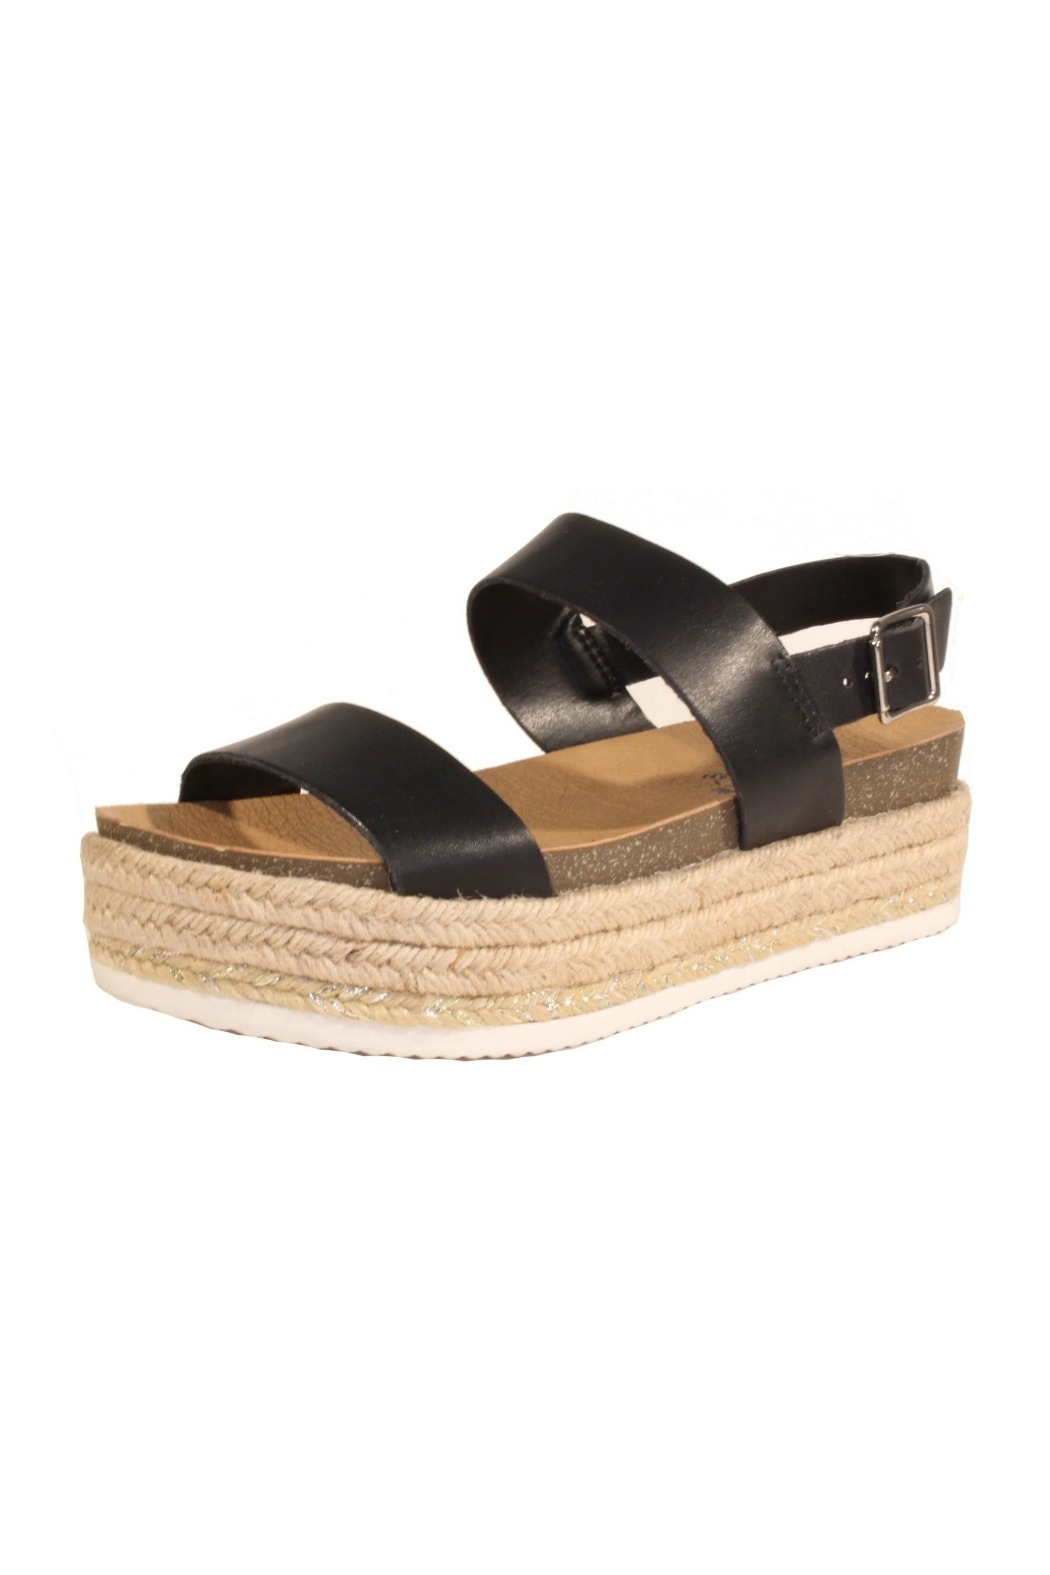 2744529930ed Chelsea Crew Colby Platform Sandals from Louisiana by Bella Bella ...